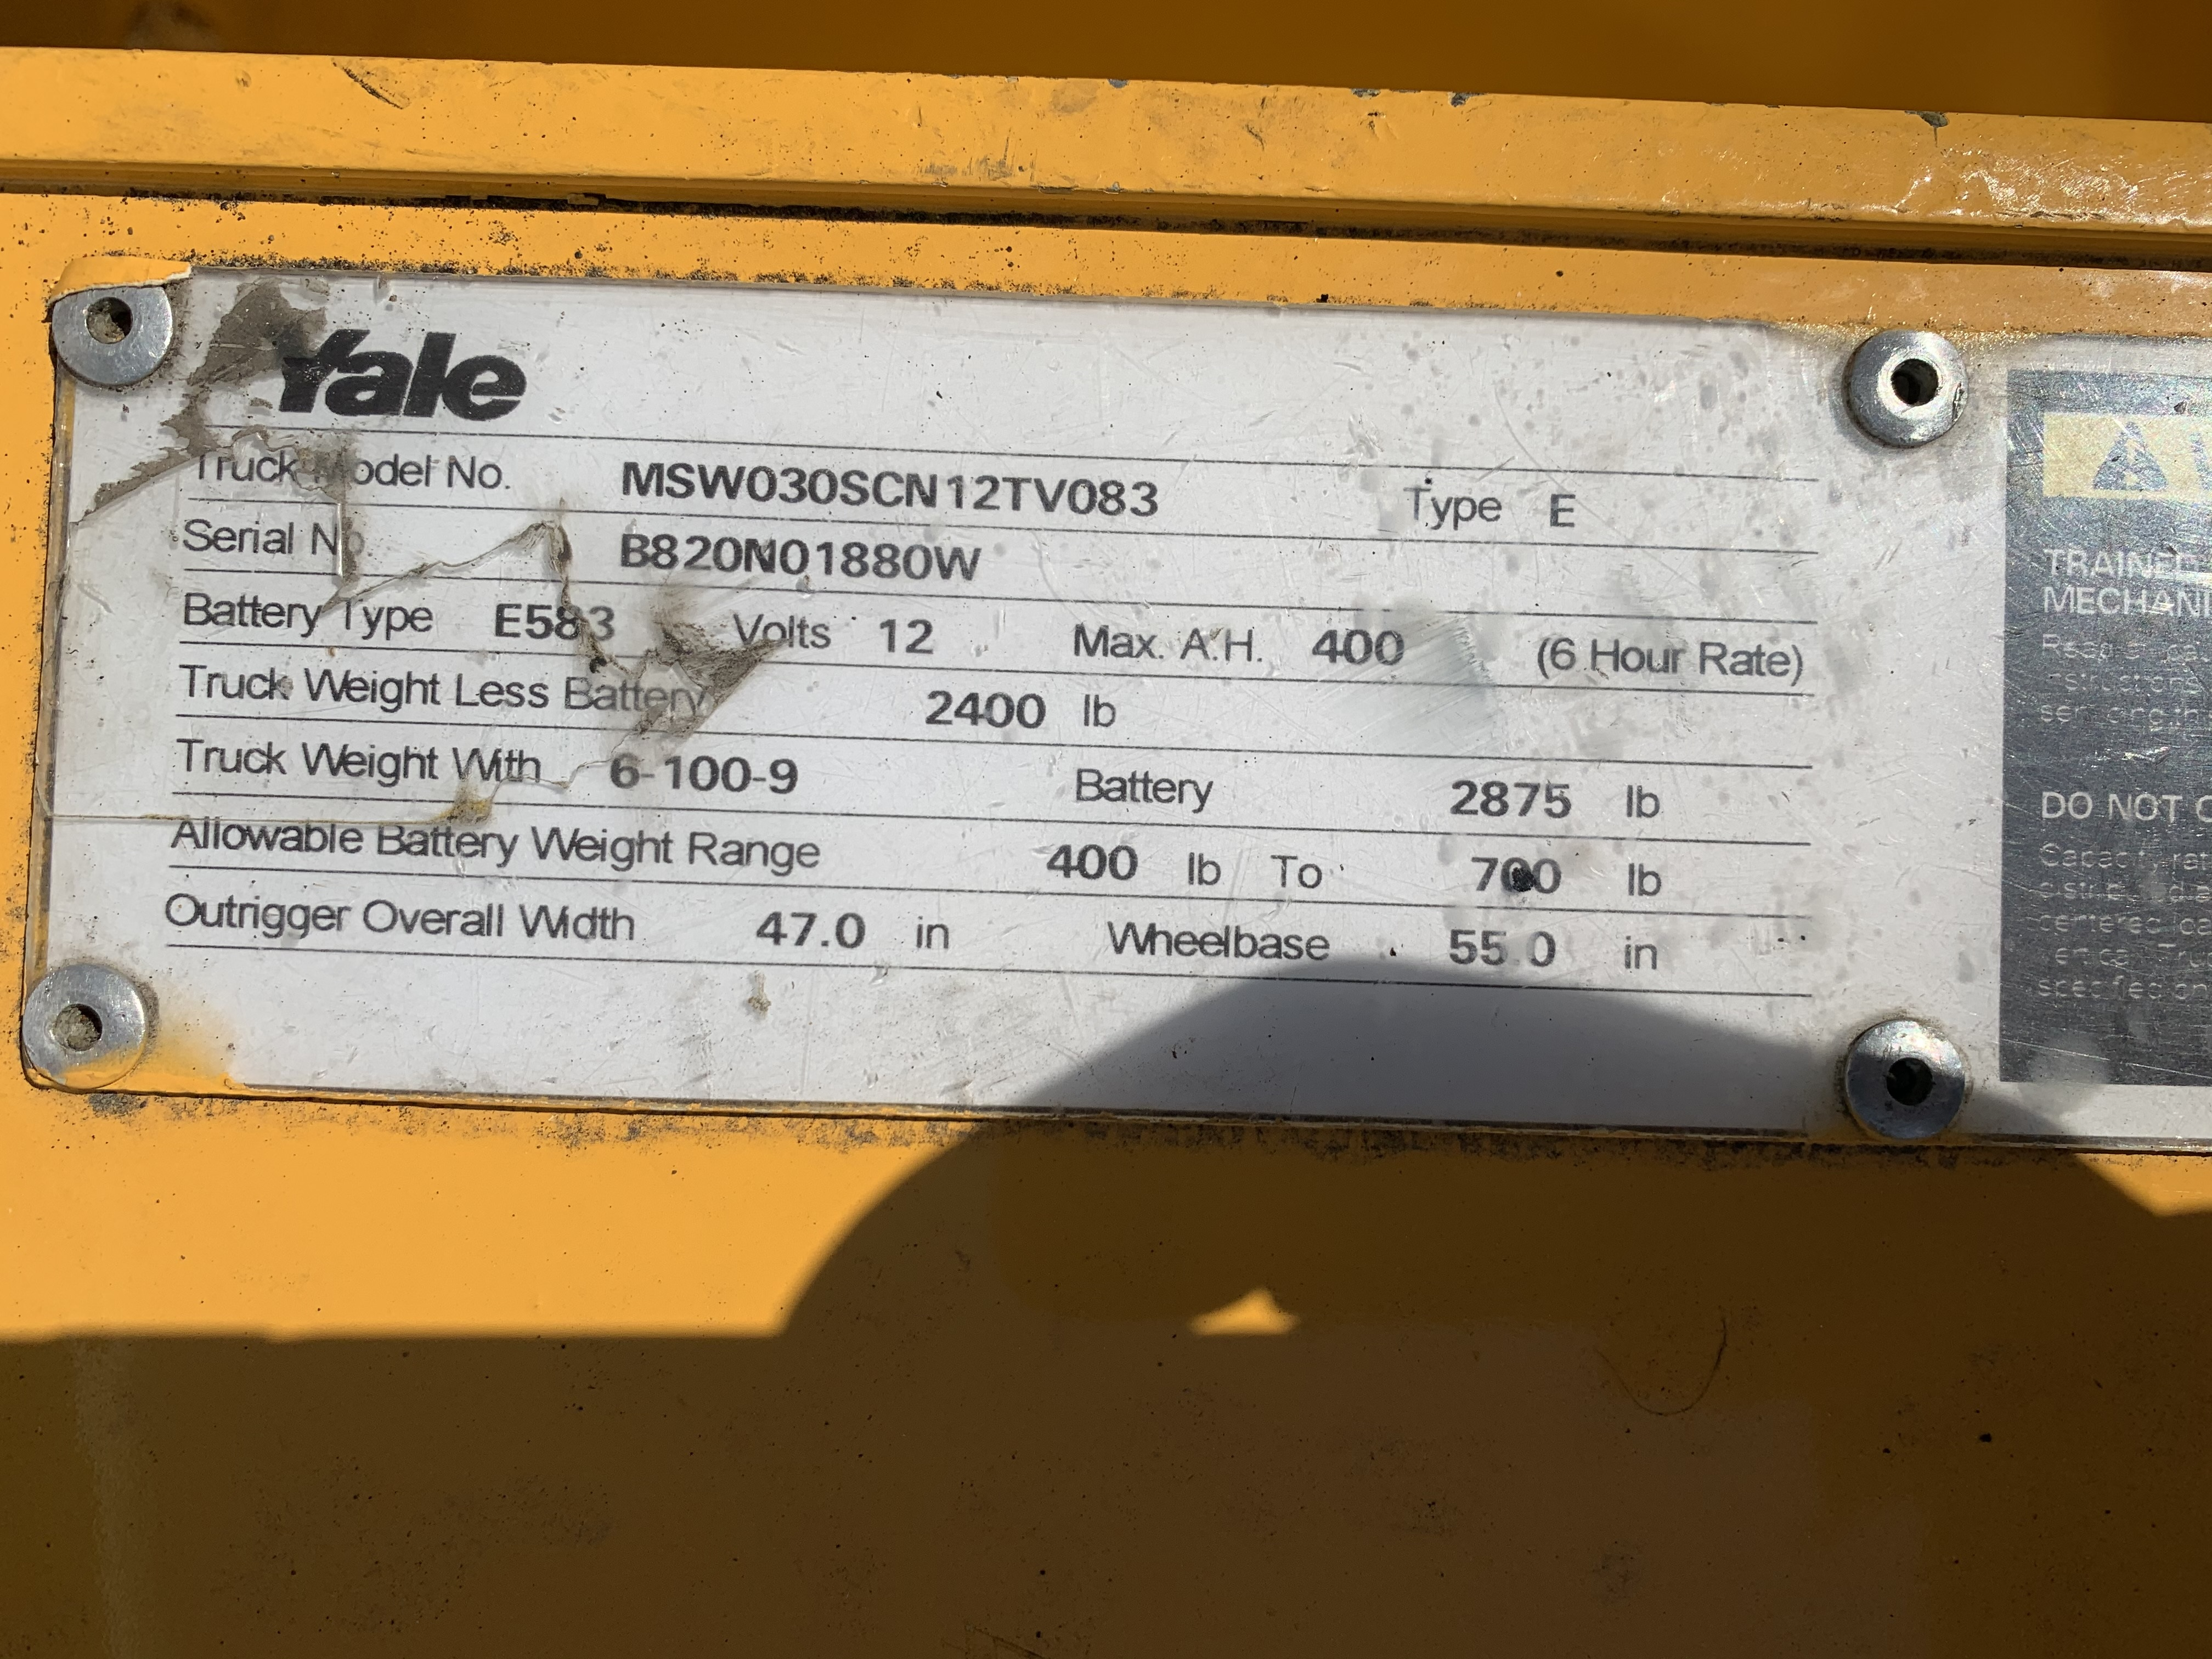 2000 Yale MSW030